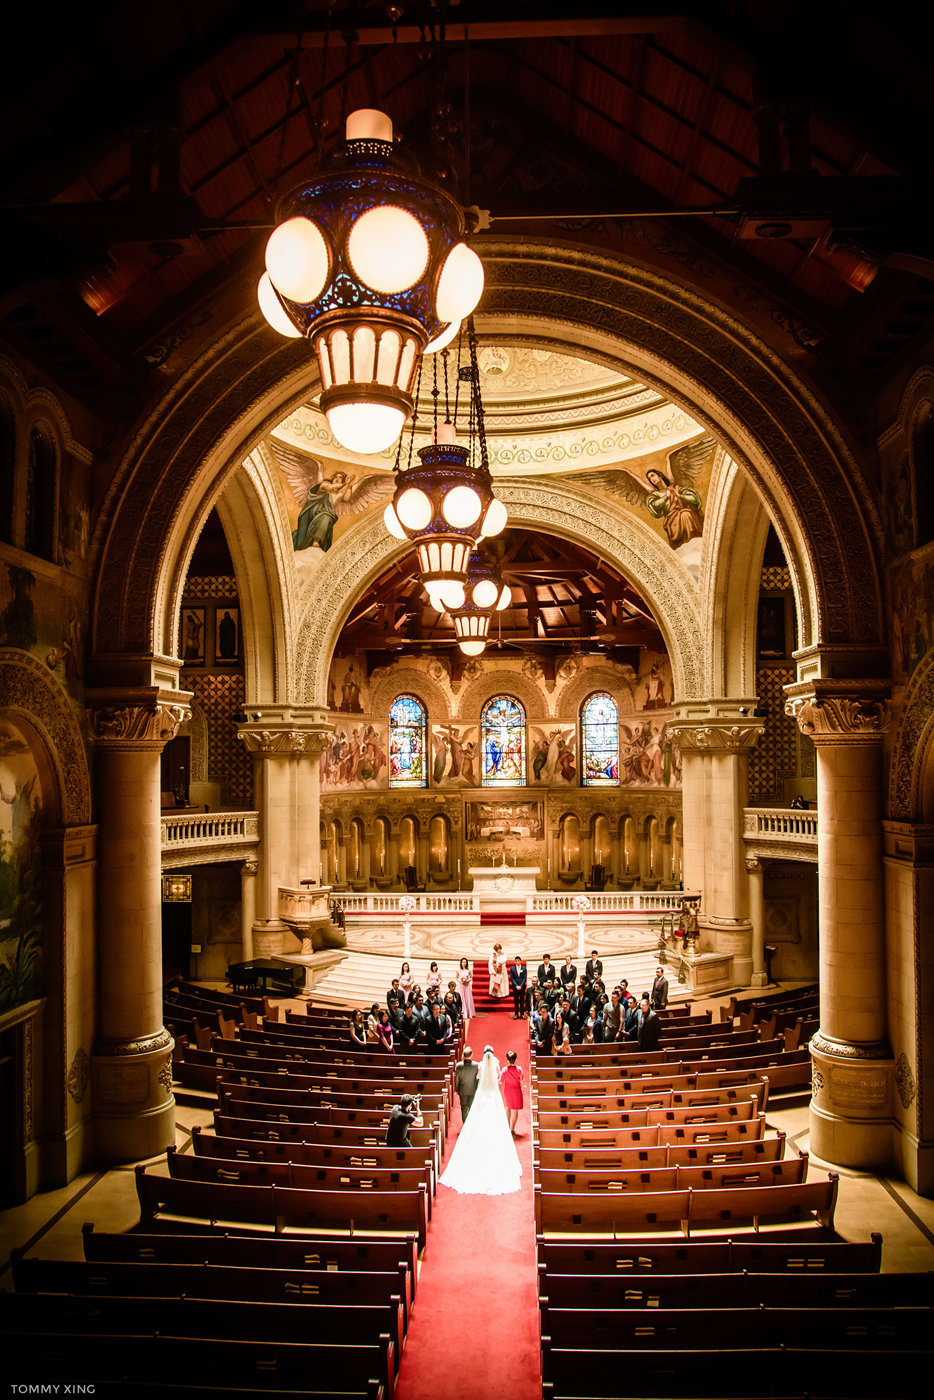 stanford memorial church wedding 旧金山湾区斯坦福教堂婚礼 Tommy Xing Photography 045.jpg